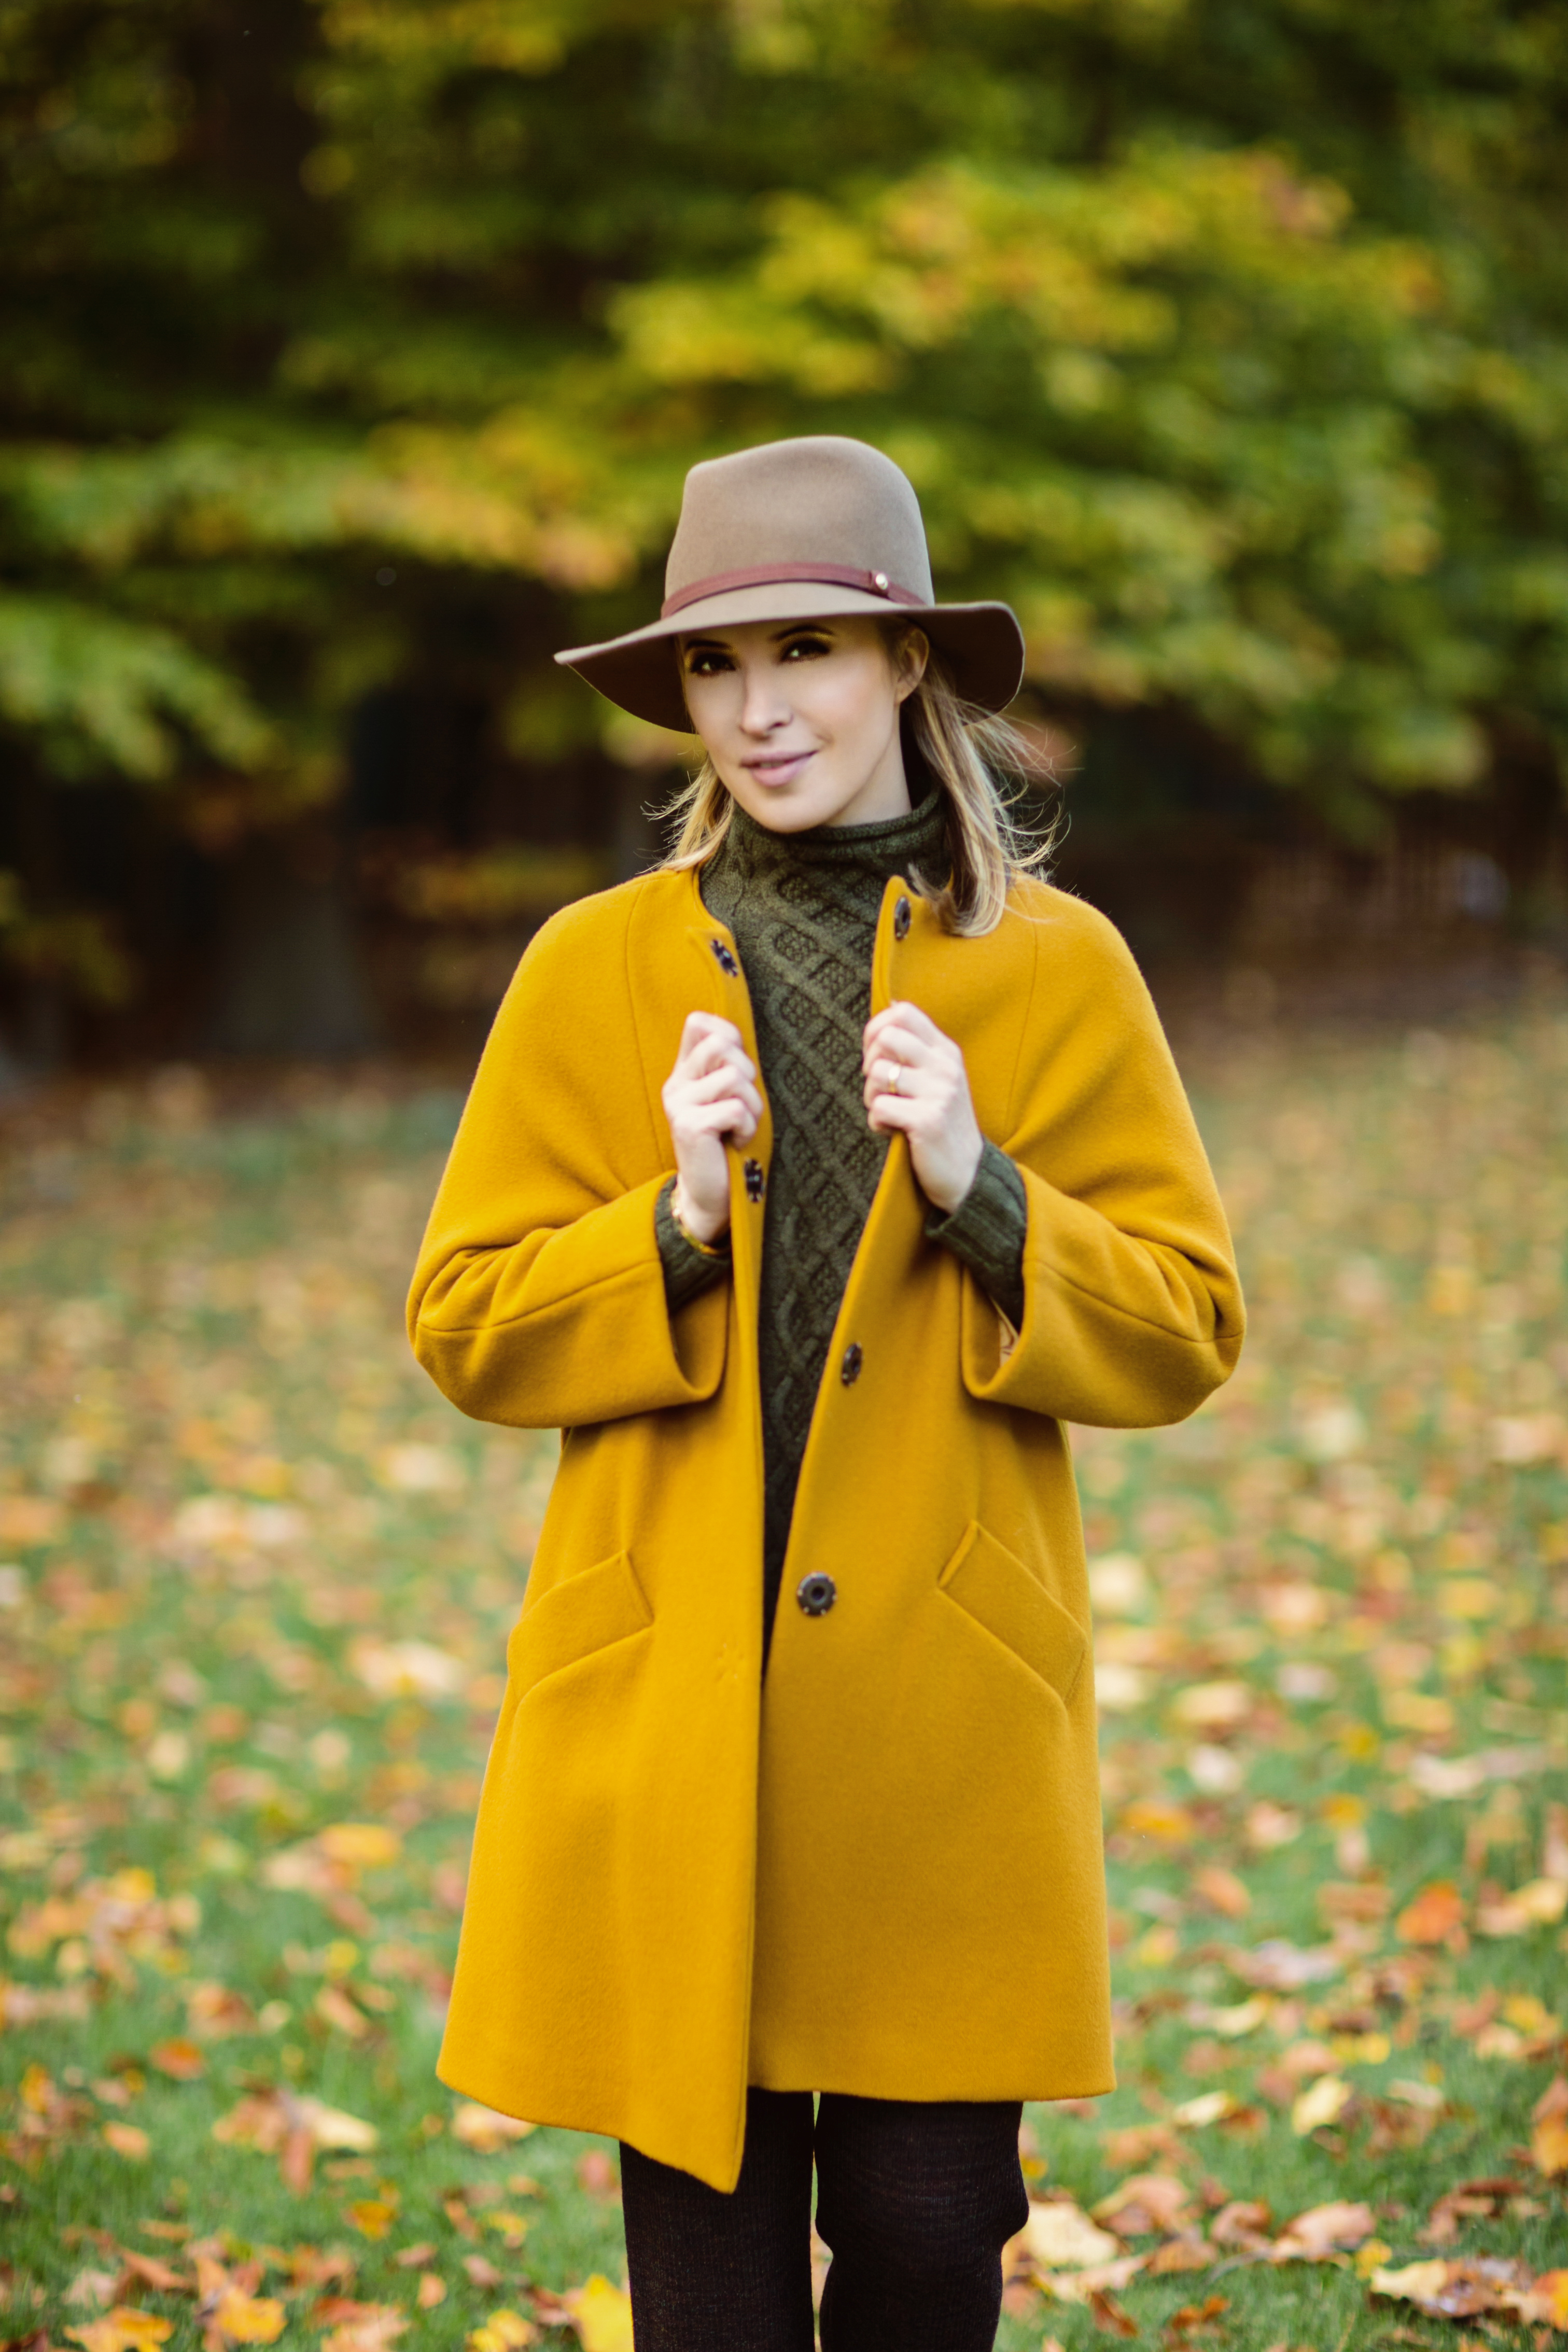 5 Tips for Wearing Wide-brimmed Hats This Winter